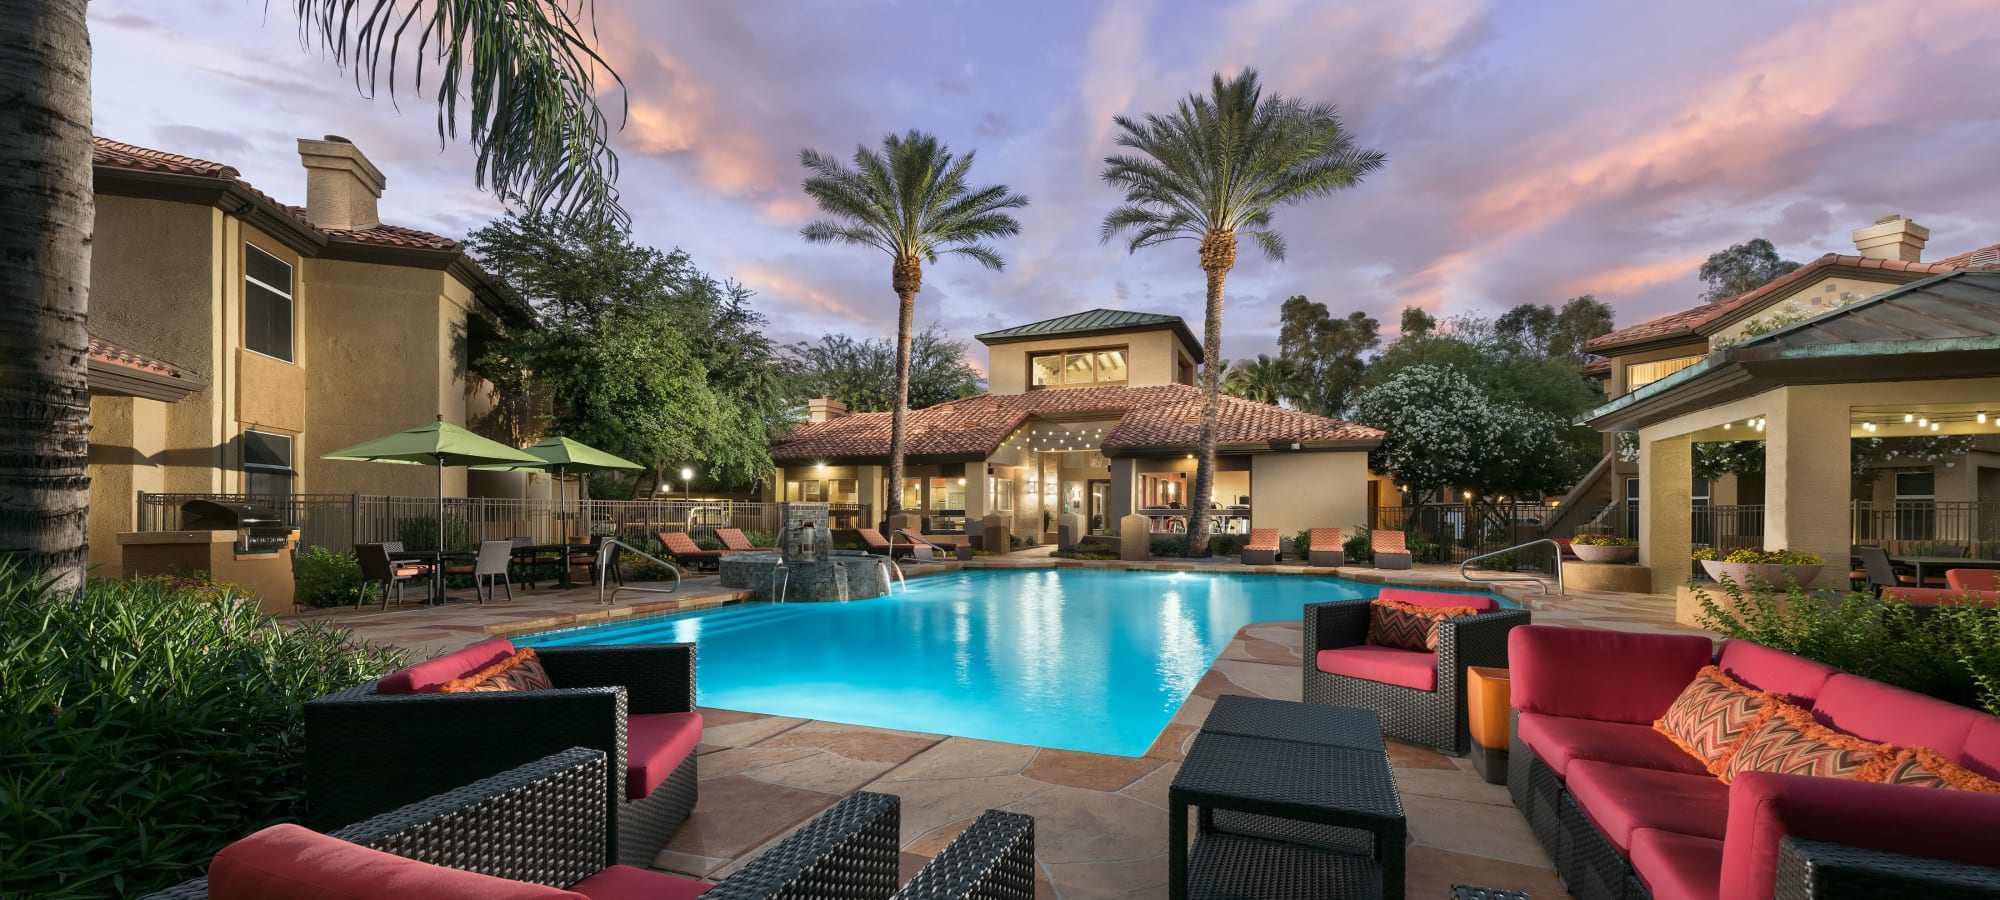 Swimming pool with lounge chairs at Bellagio in Scottsdale, Arizona